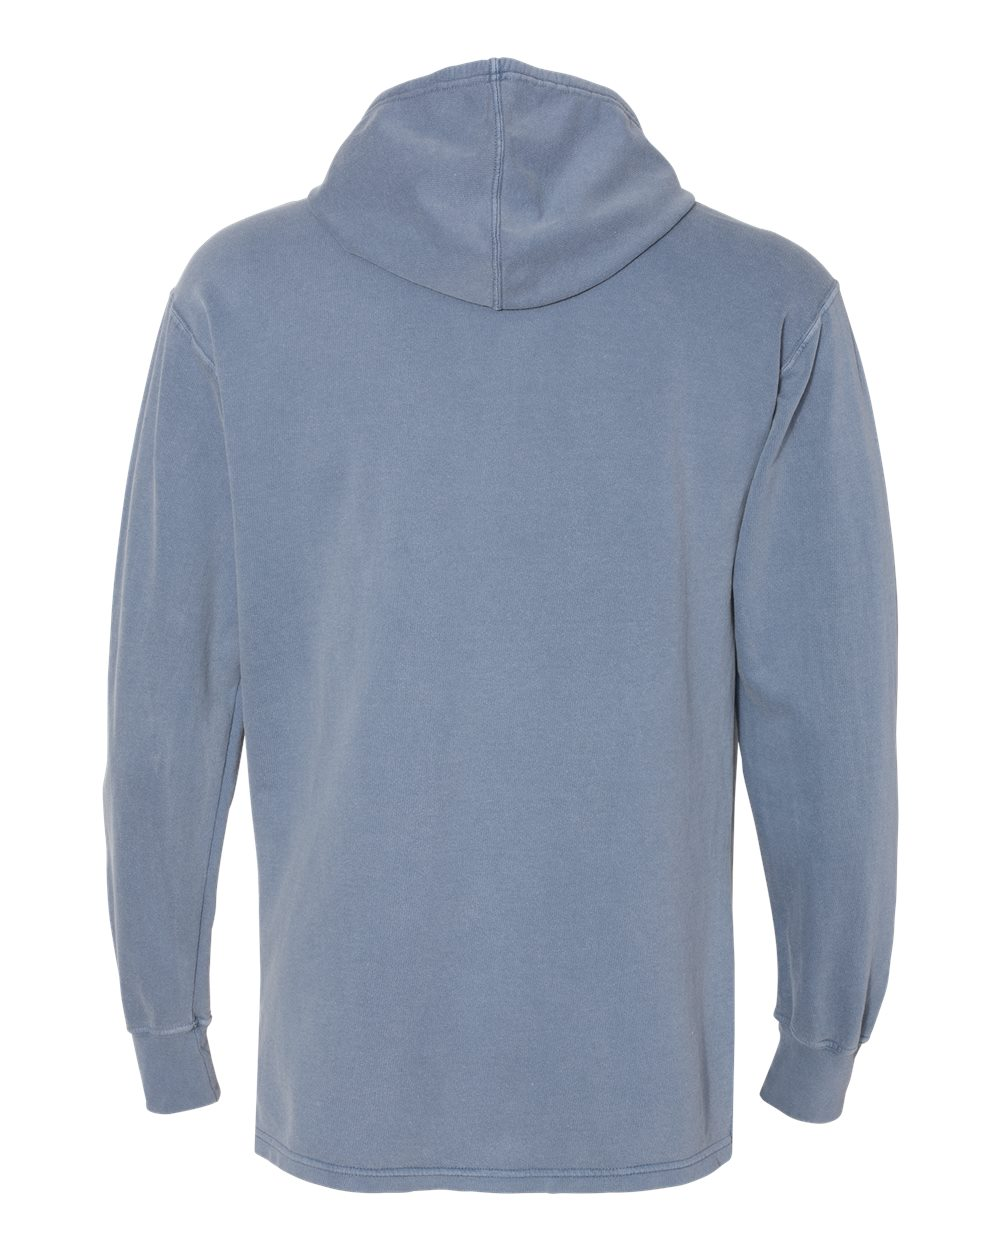 Comfort-Colors-Mens-French-Terry-Scuba-Hoodie-Shirt-Blank-Solid-1535-up-to-3XL thumbnail 7